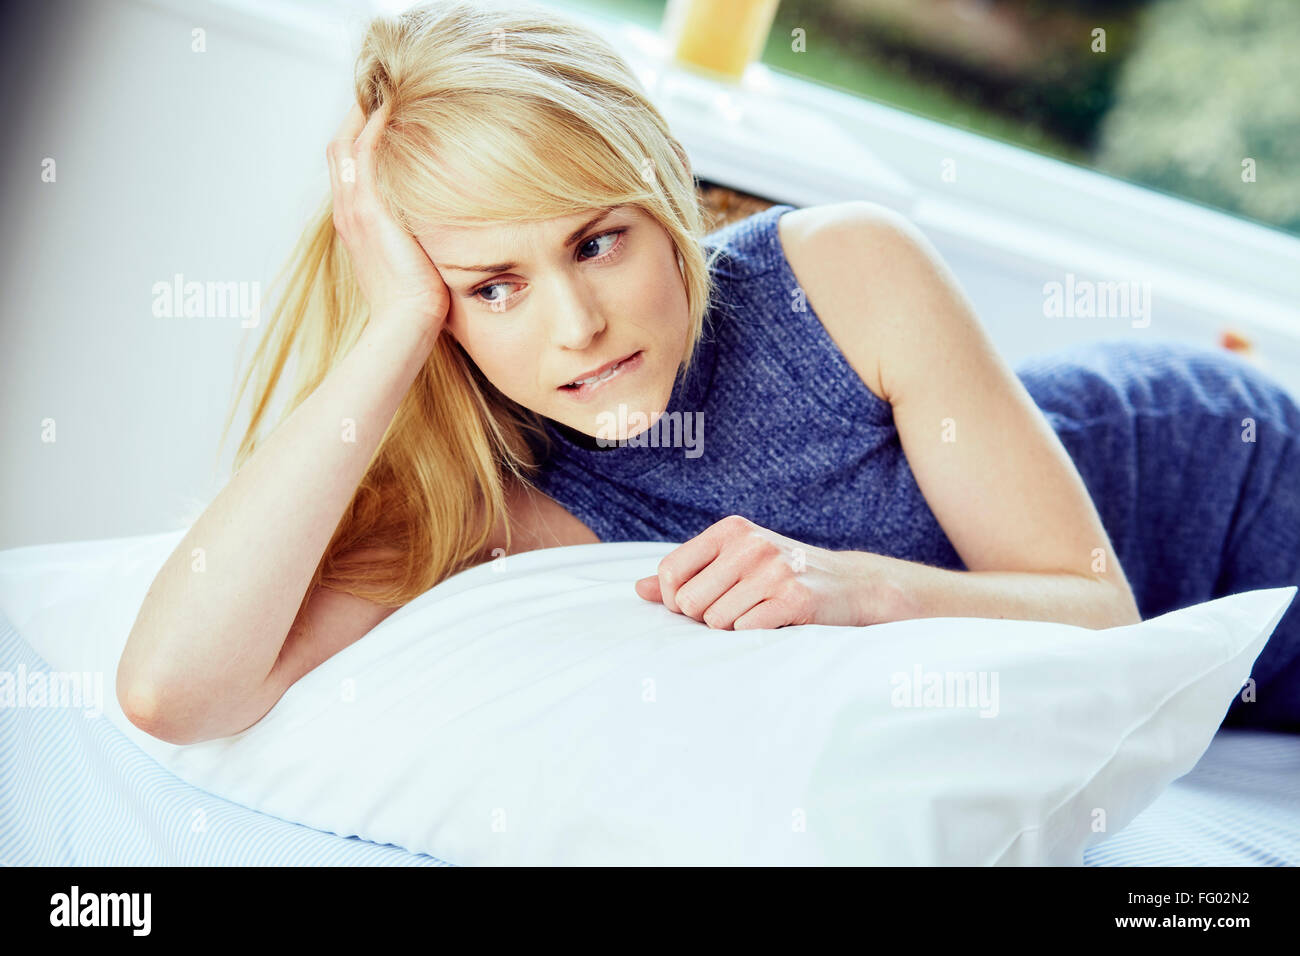 Souligné girl Lying in Bed Photo Stock